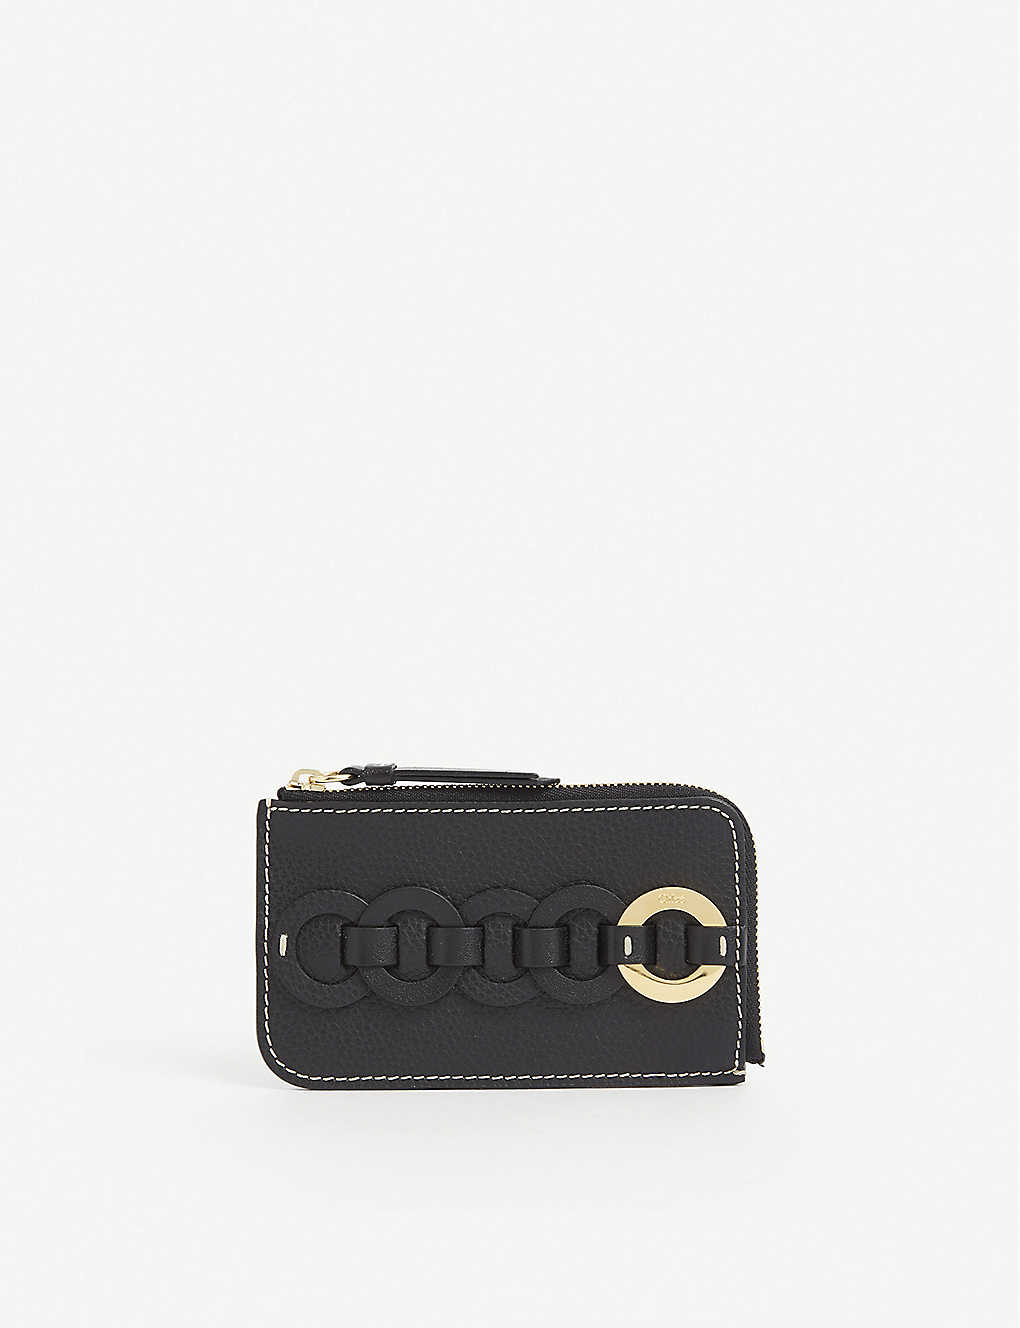 Chloé DARRYL SMALL GRAINED-LEATHER PURSE